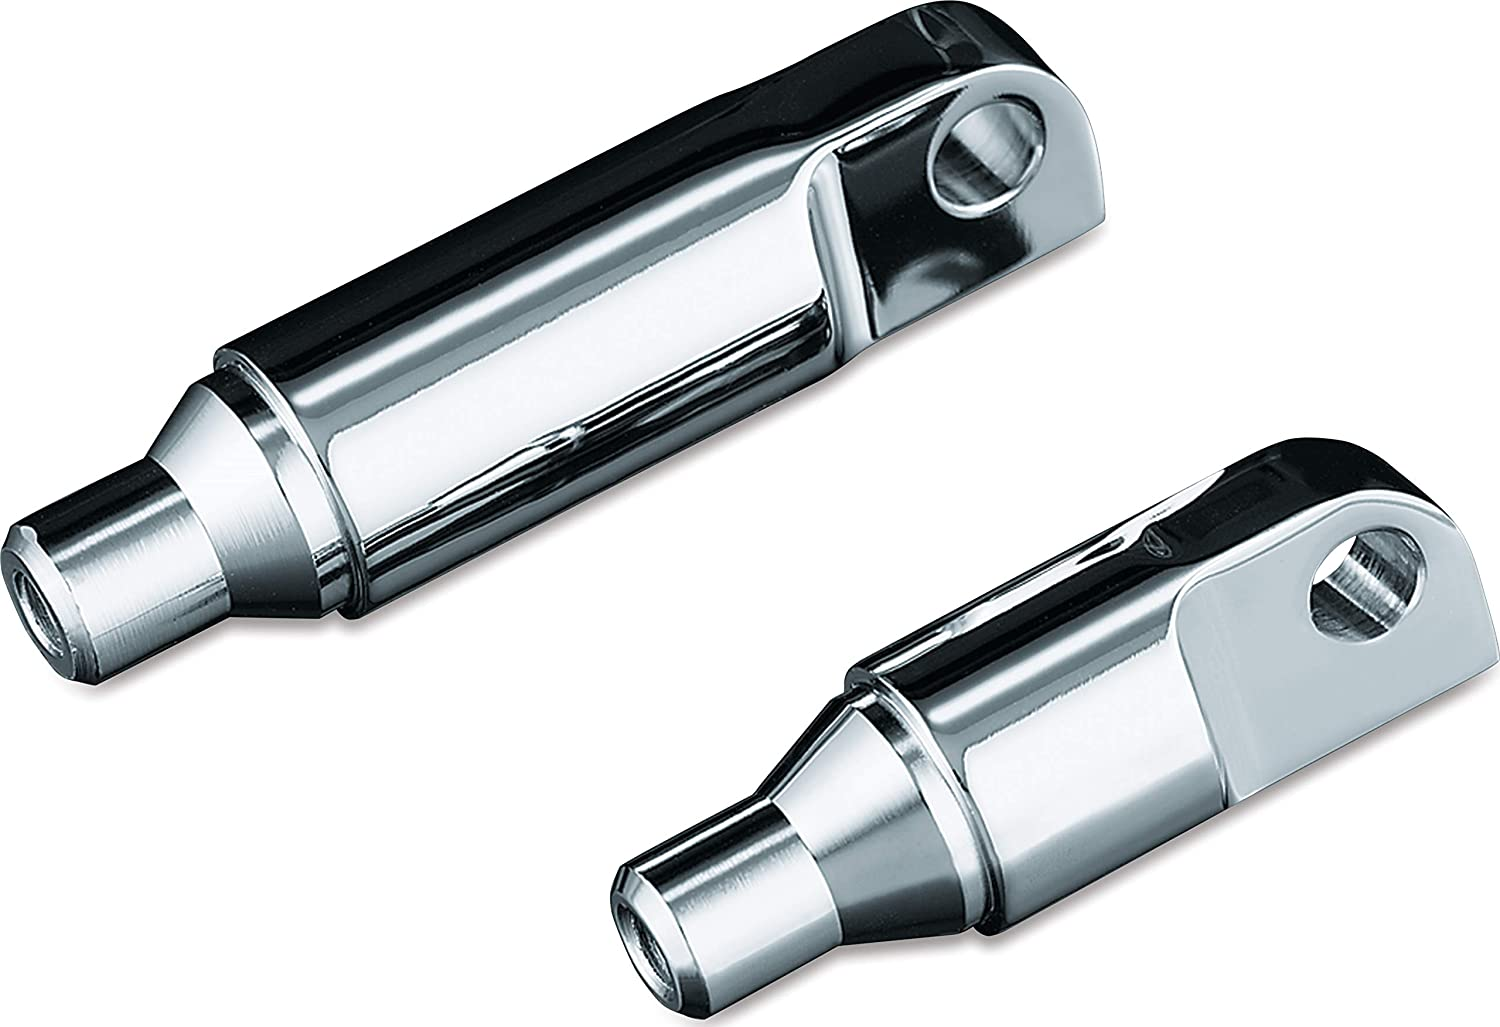 1 Pair 1-1//2 Male Mount ISO Footpeg Extensions Chrome Kuryakyn 8063 Motorcycle Foot Control Component